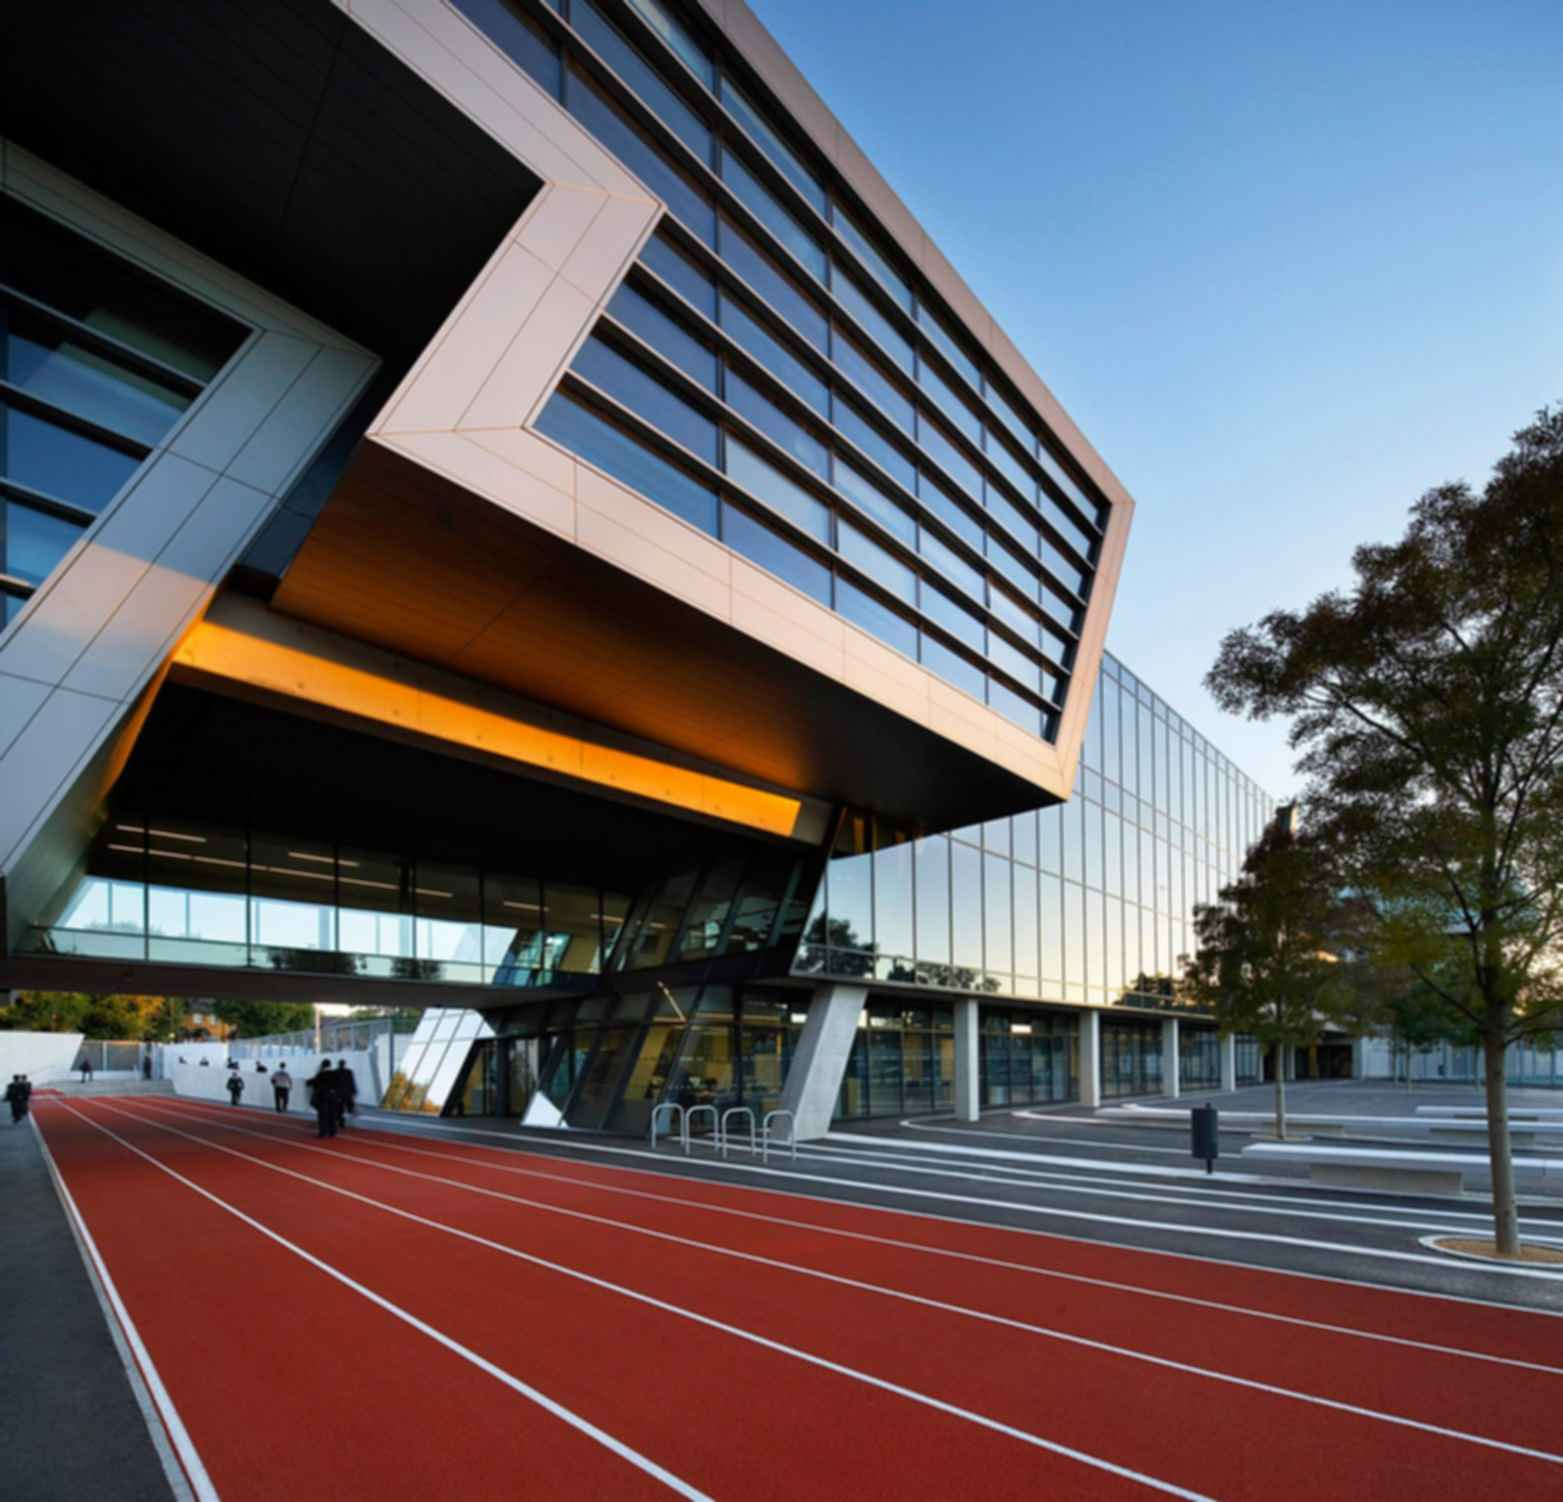 Evelyn Grace Academy - Running Track/Exterior